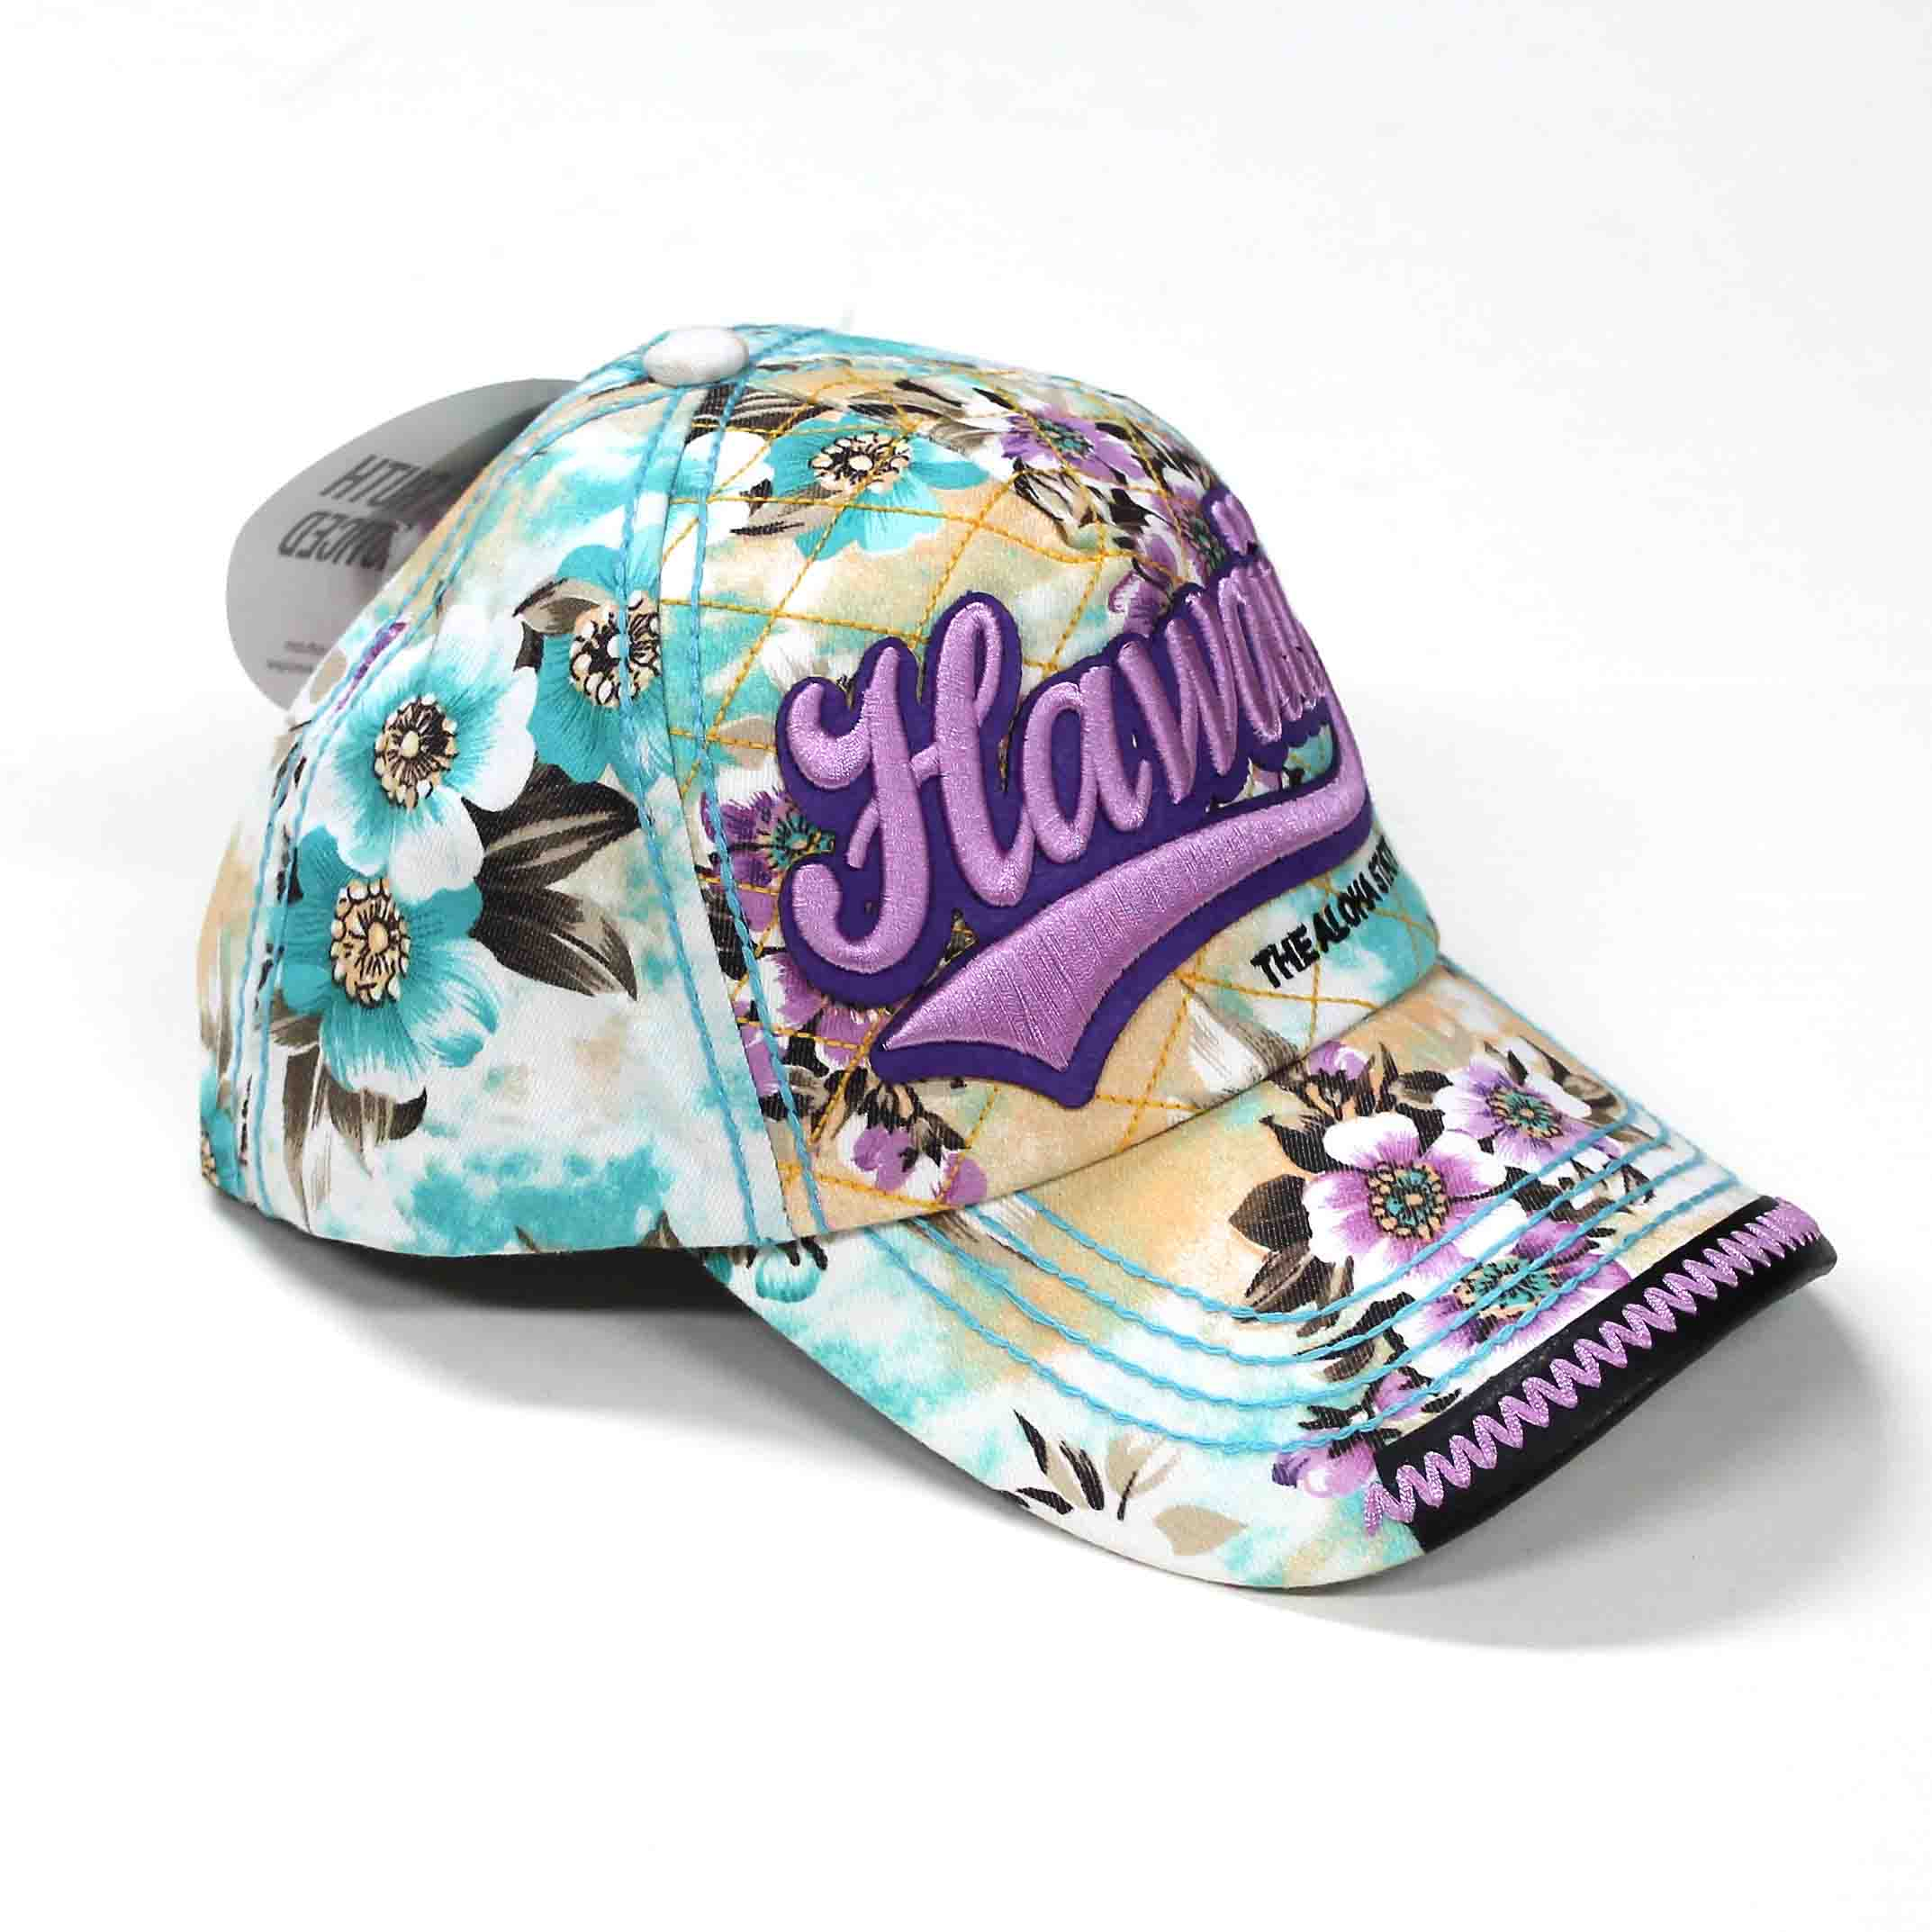 【Robin Ruth Hawaii】 Hawaiian Floral Cap / CHI366-E / Teal & Purple/Tシャツ・カジュアル/帽子/Robin Ruth